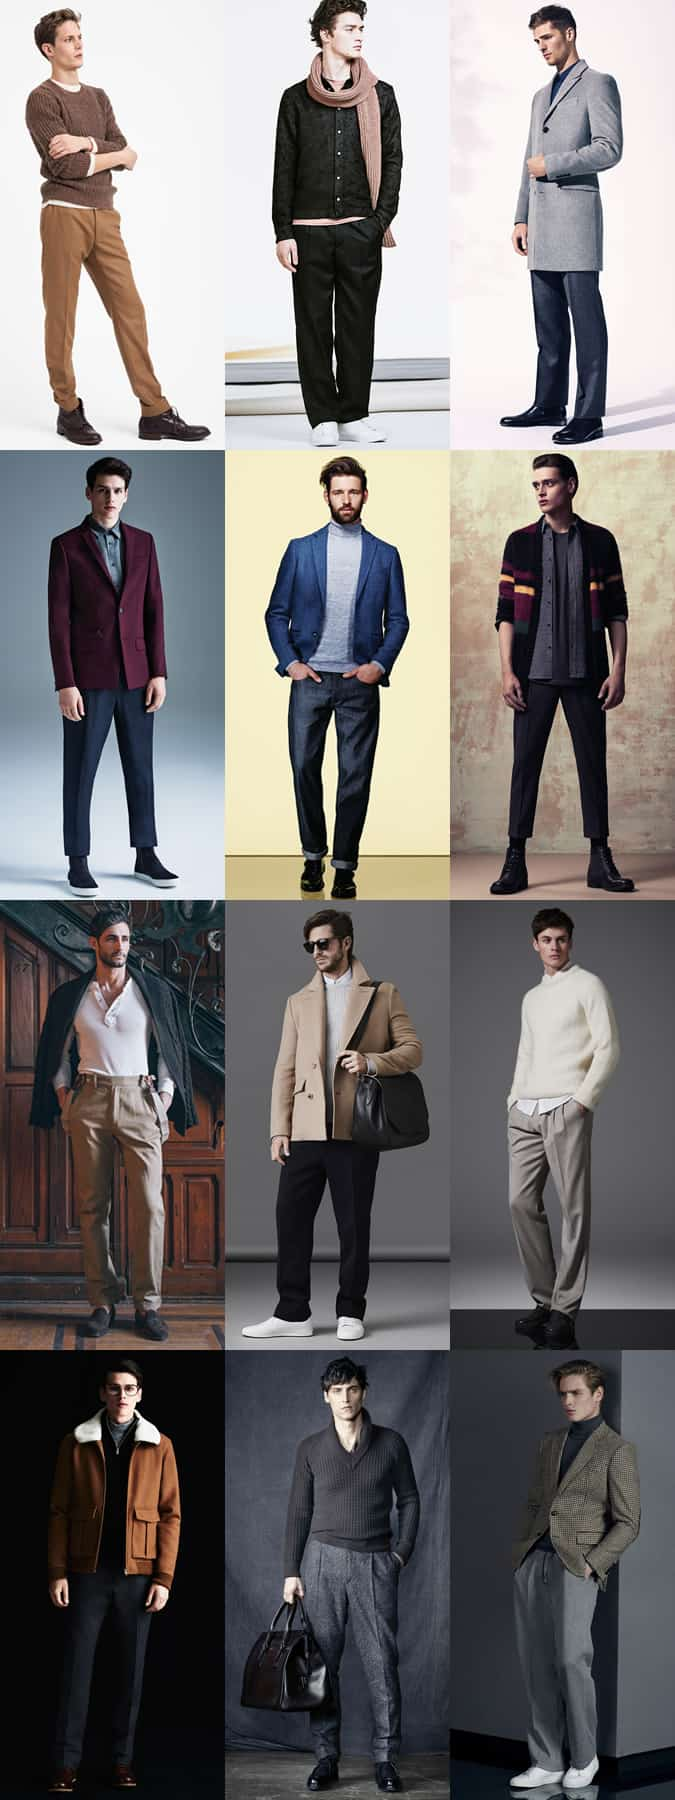 Men's Relaxed Leg Trousers Outfit Inspiration Lookbook